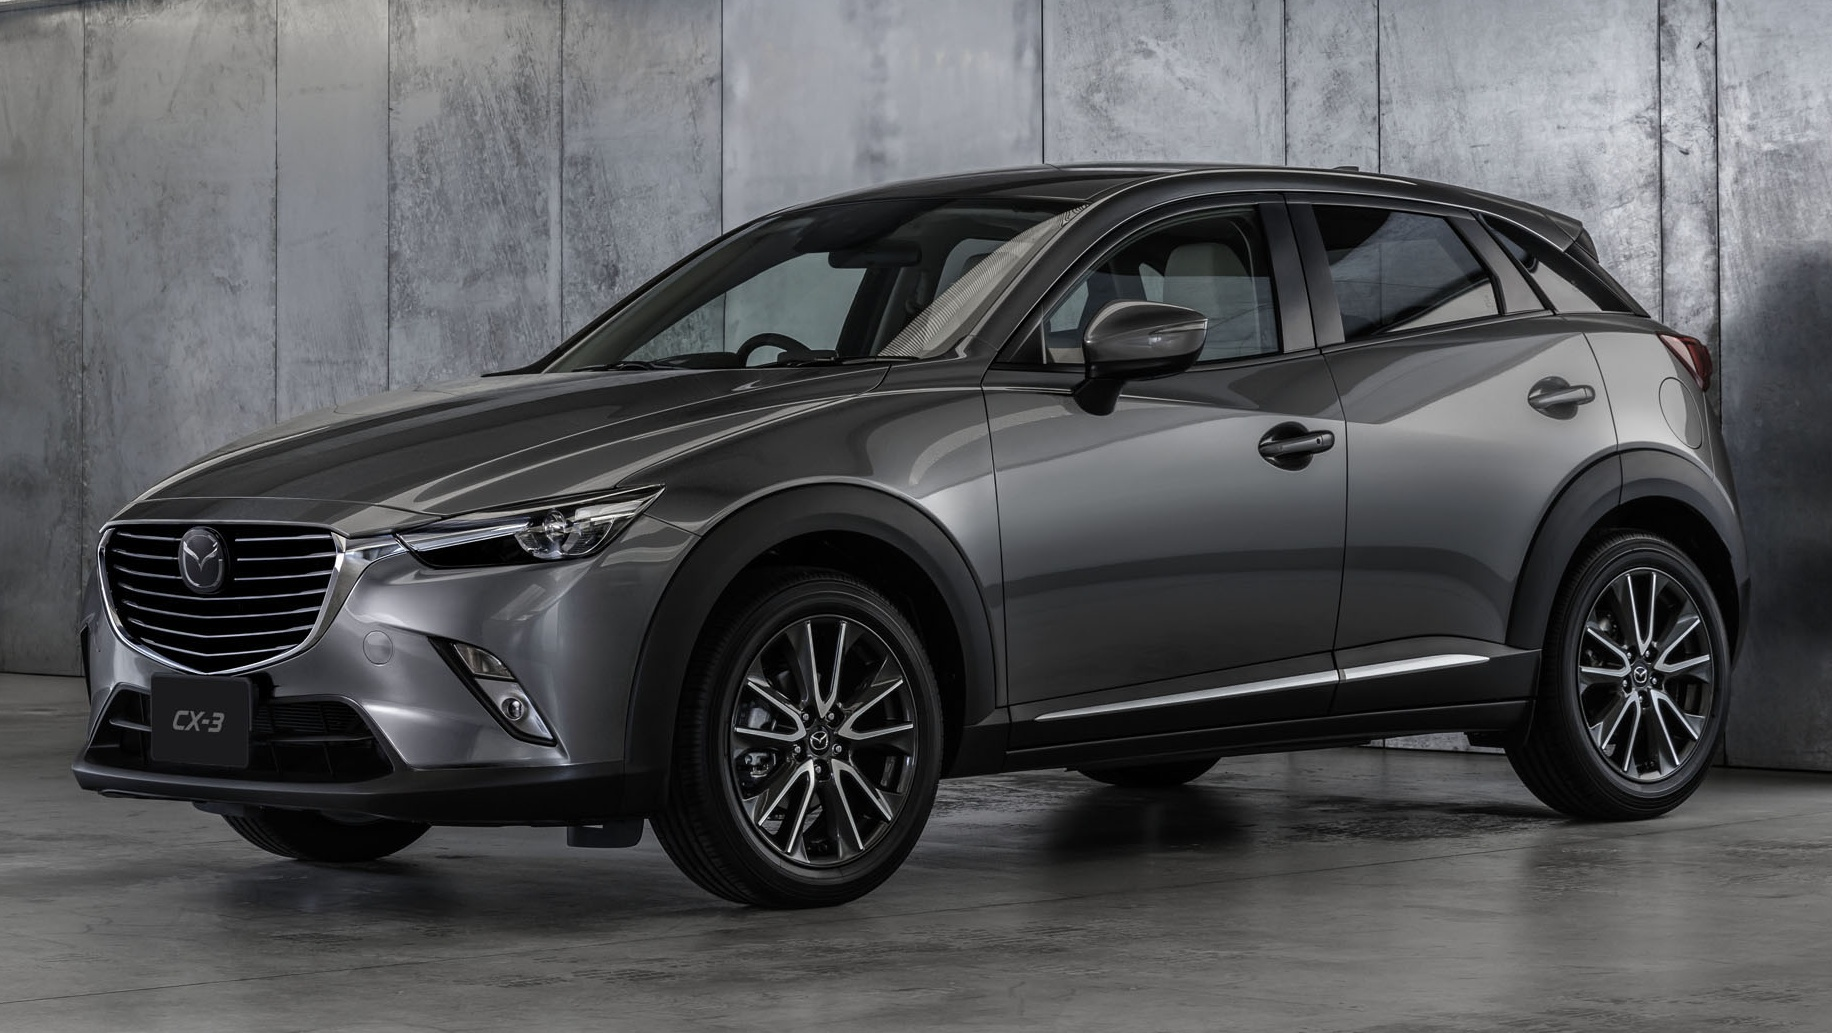 2017 mazda cx 3 now on sale in malaysia with g vectoring control price up rm3 230 to rm138 373. Black Bedroom Furniture Sets. Home Design Ideas